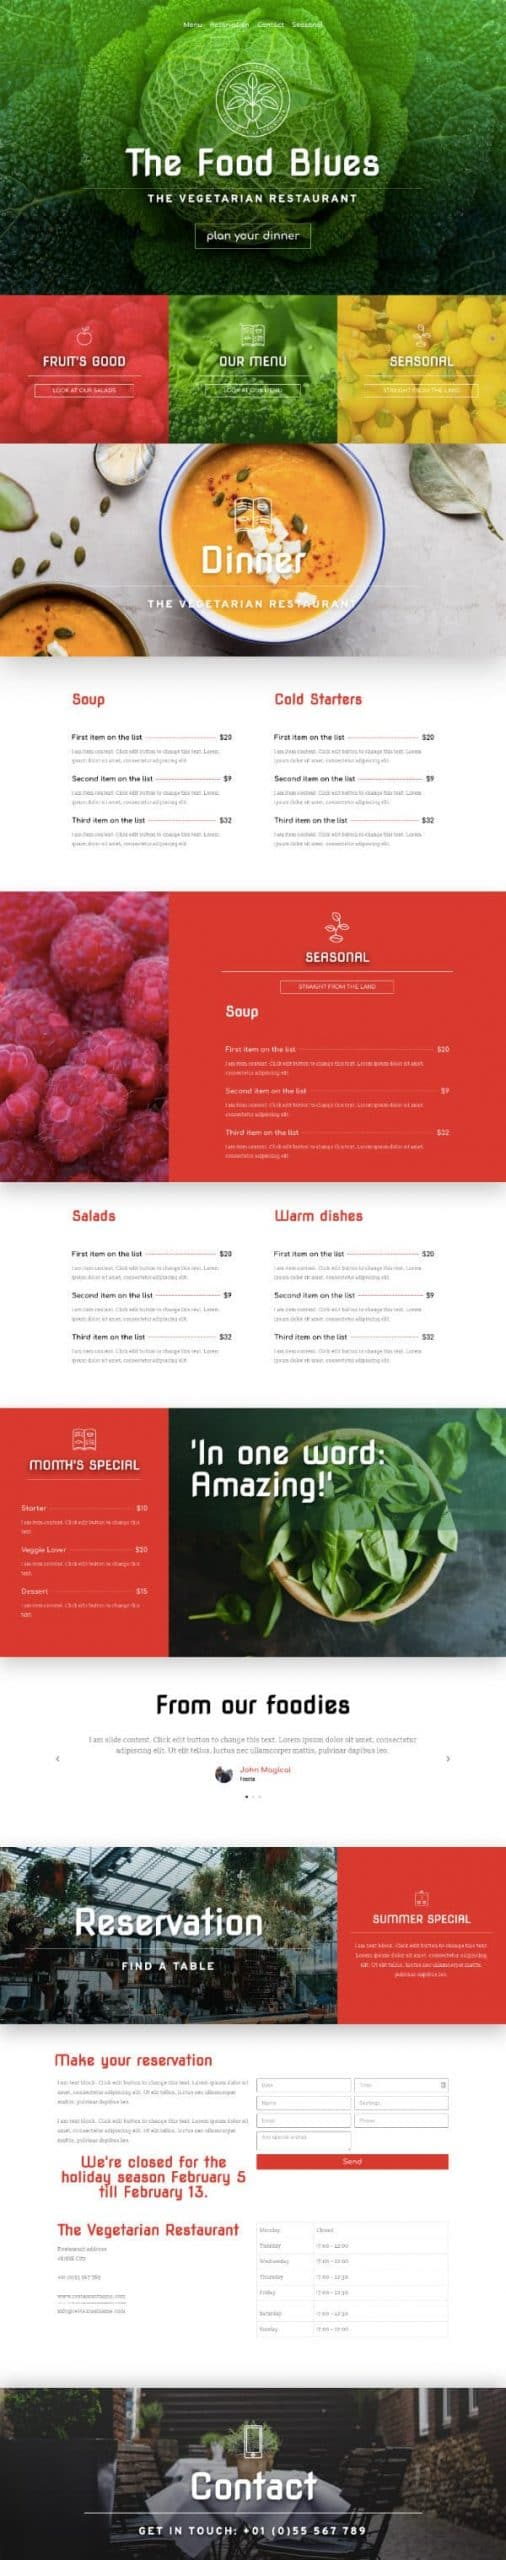 Task IT - Example Website for Restaurant